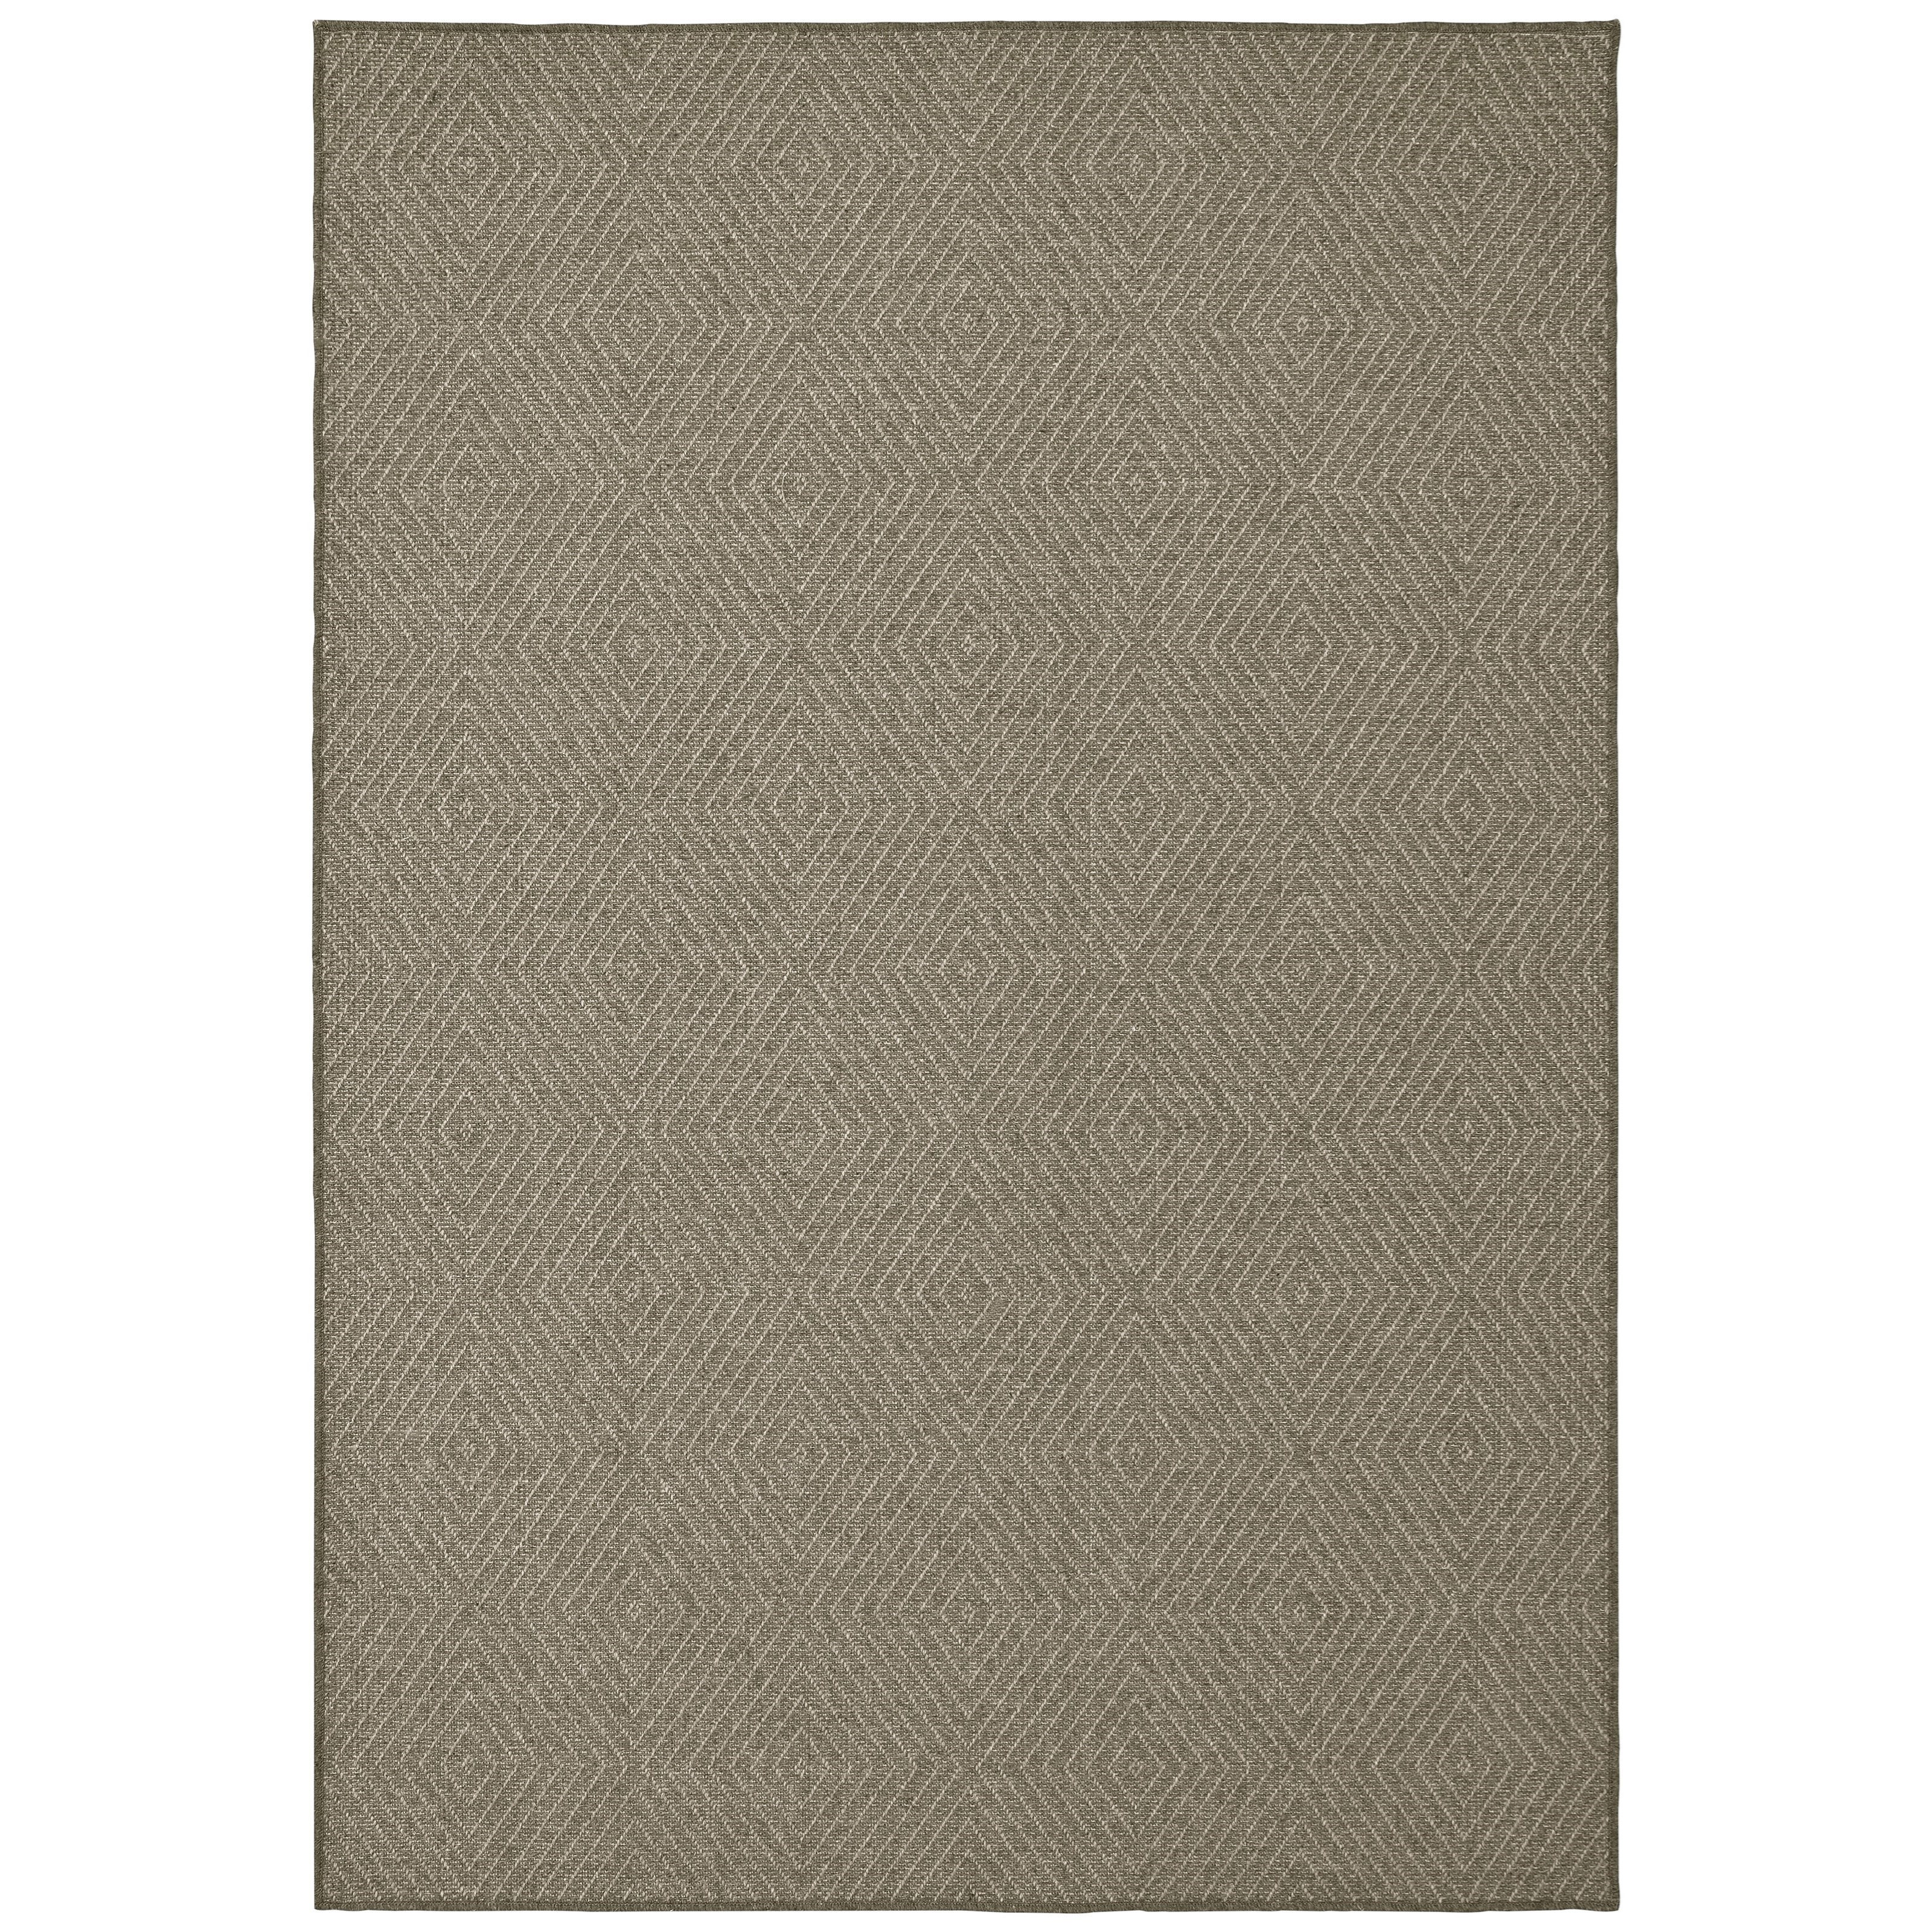 "Boucle 6' 7"" X  9' 6"" Rectangle Rug by Oriental Weavers at Darvin Furniture"